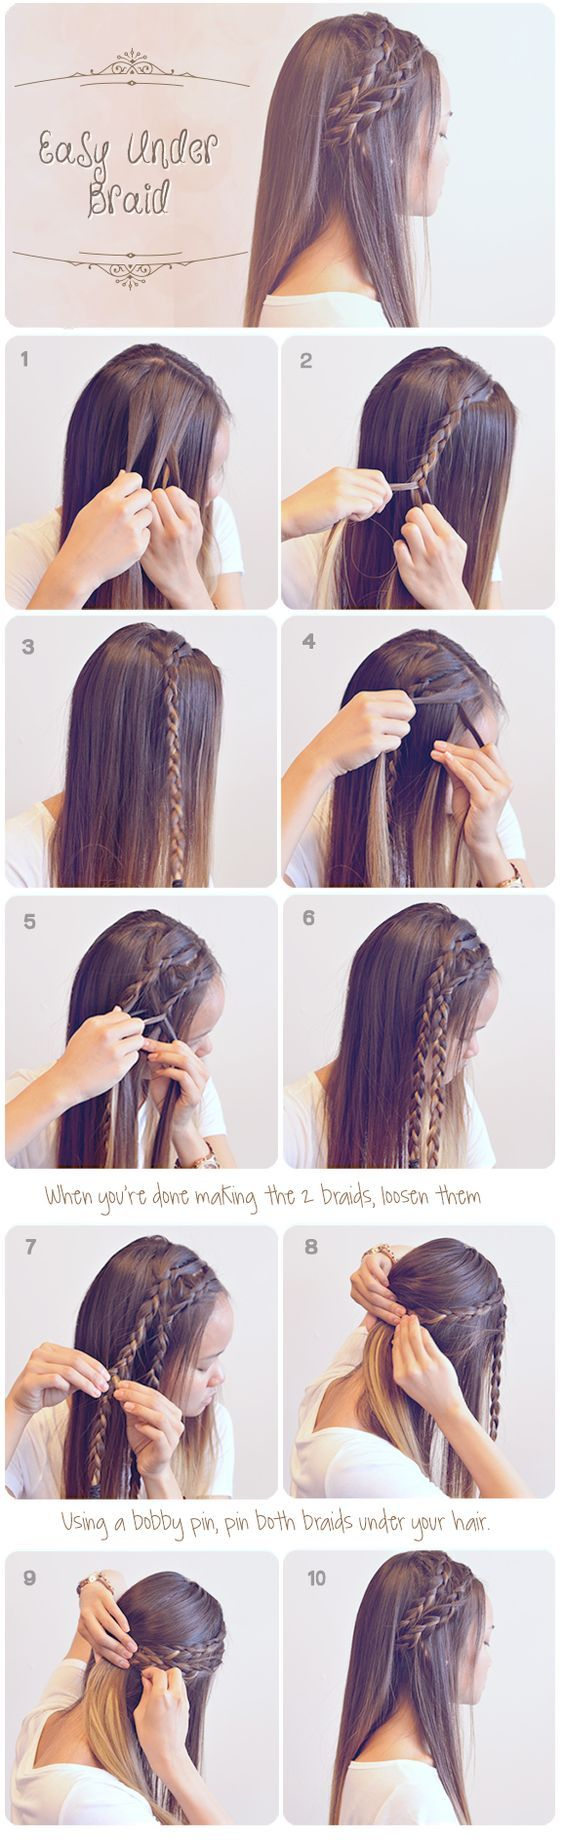 easy hairstyle tutorials for all occasions easy braided